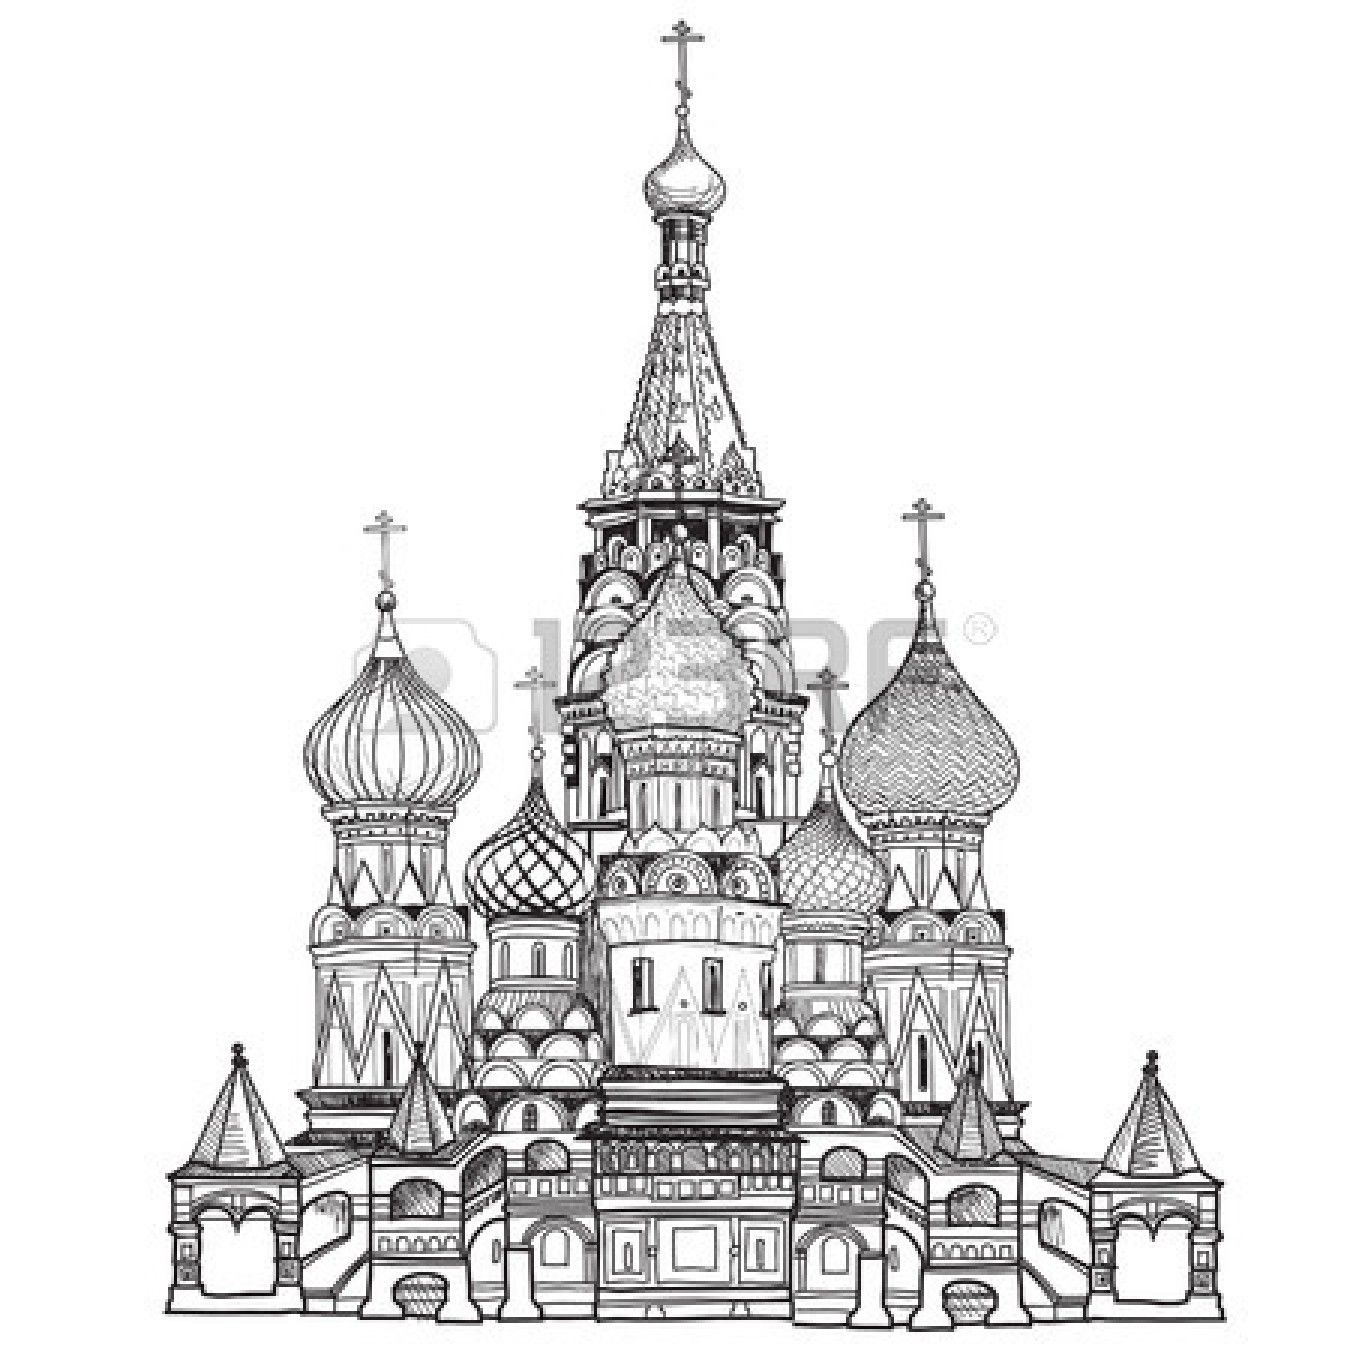 catedral de san basilio la plaza roja mosc rusia ilustraci n vectorial aislados en fondo. Black Bedroom Furniture Sets. Home Design Ideas